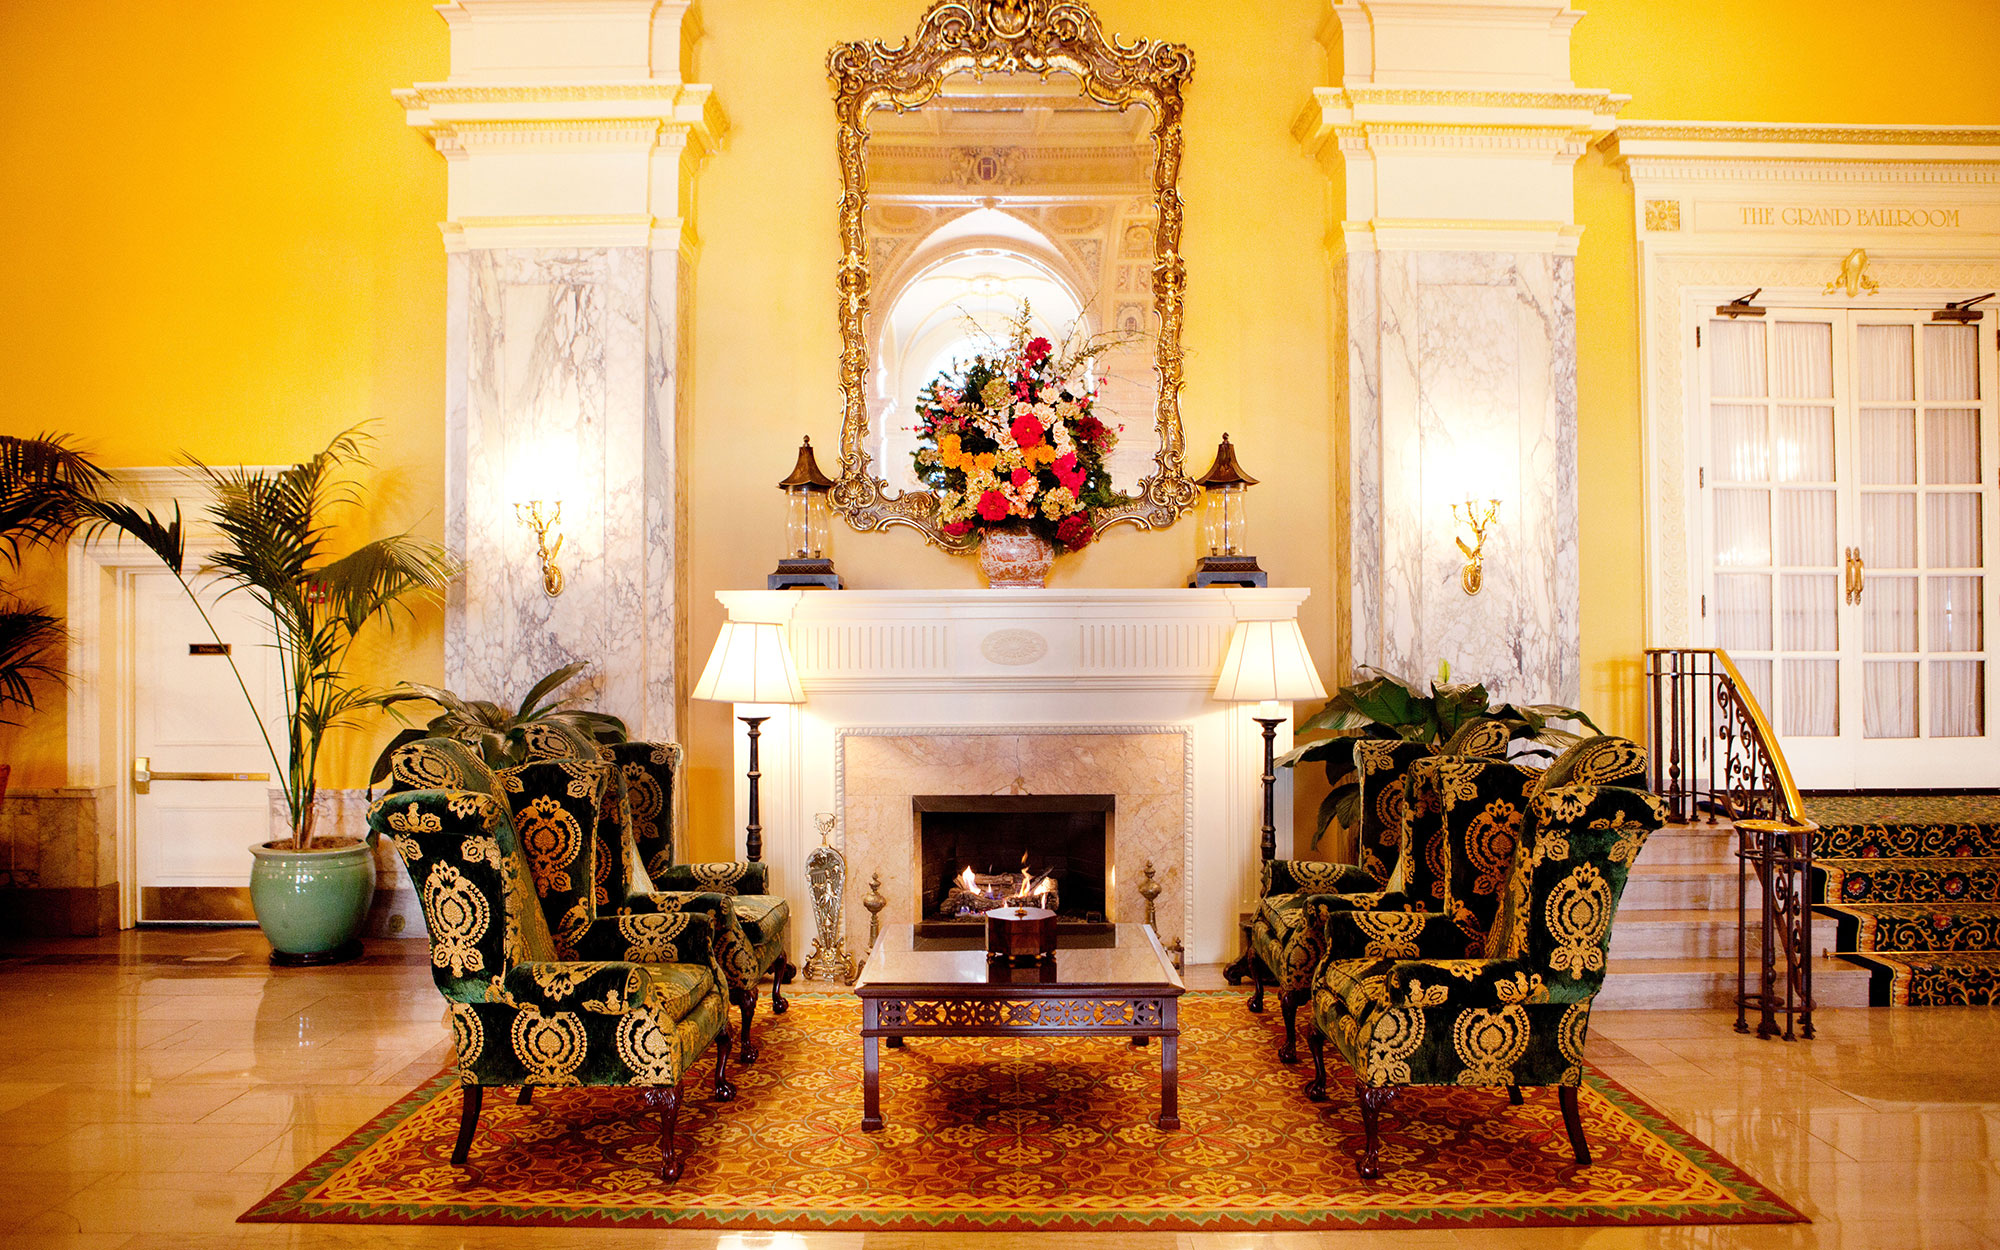 Tennessee: The Hermitage Hotel